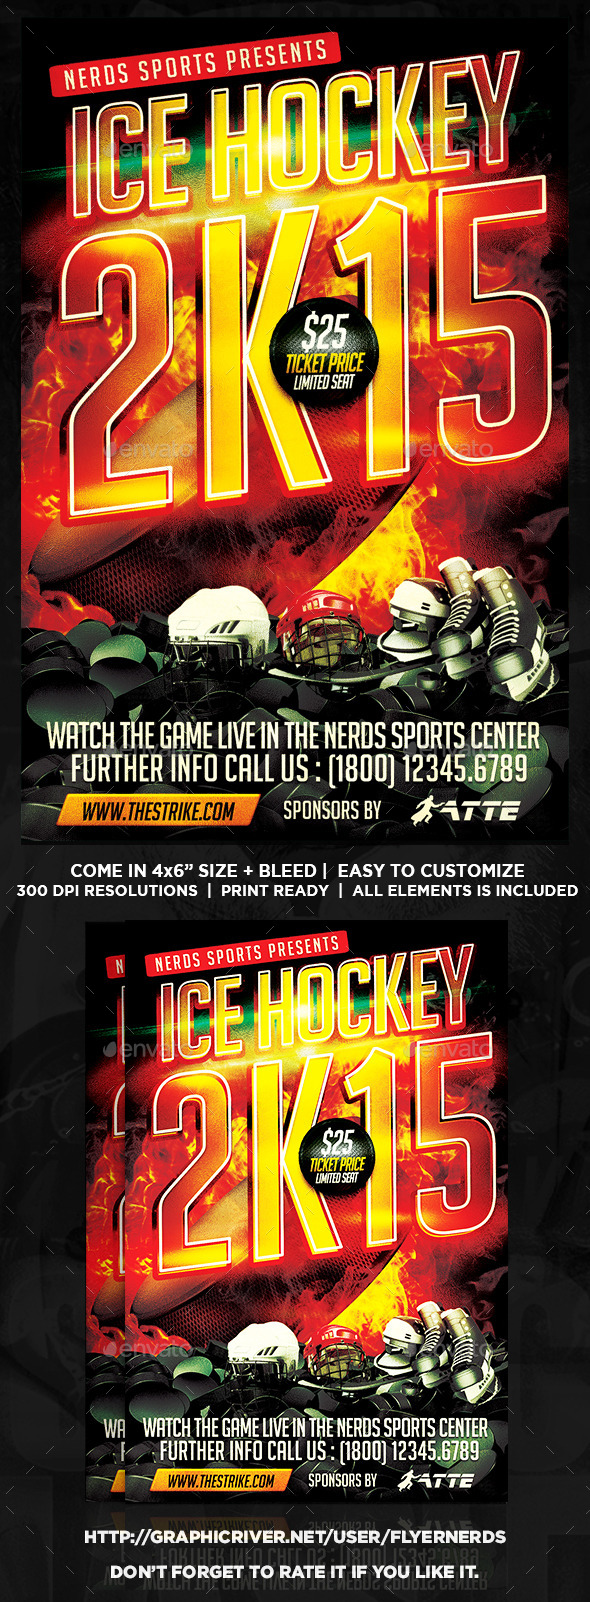 GraphicRiver Ice Hockey 2K15 Championships Flyer 9907031